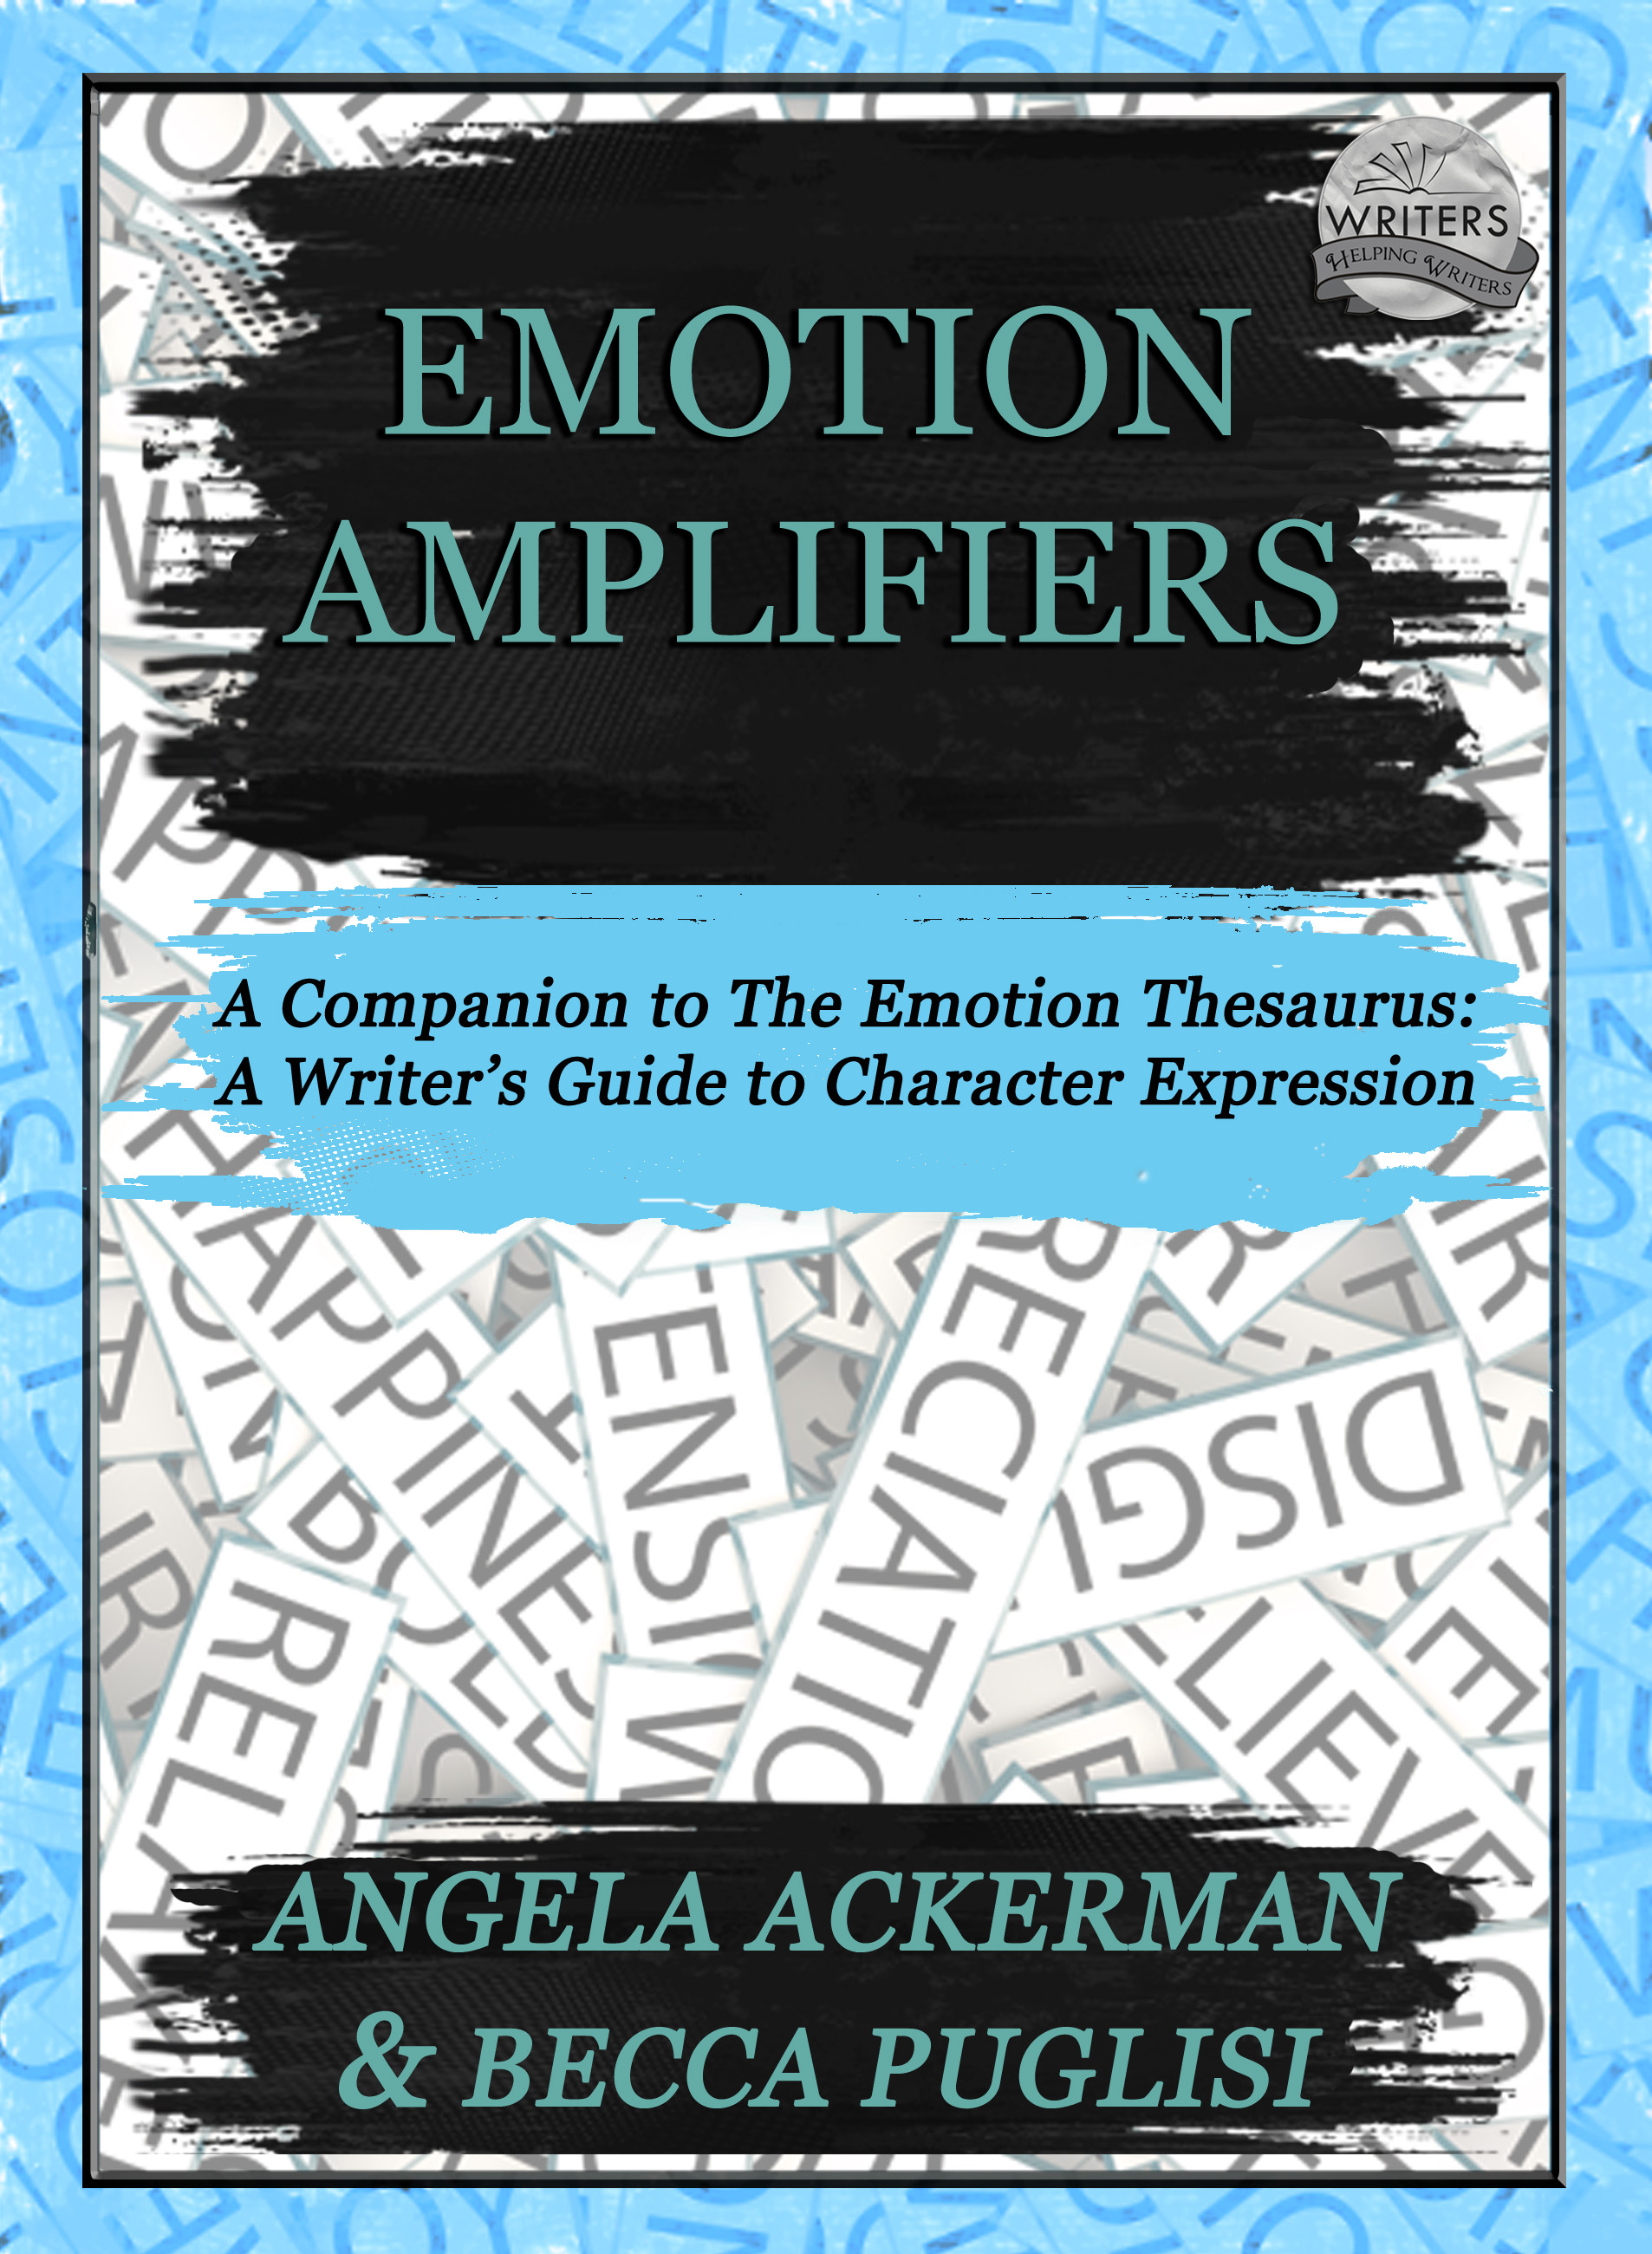 To find out more about The Emotion Thesaurus book or to grab its companion ebooklet Emotion Amplifiers go HERE.  sc 1 st  Writers Helping Writers : door thesaurus - Pezcame.Com